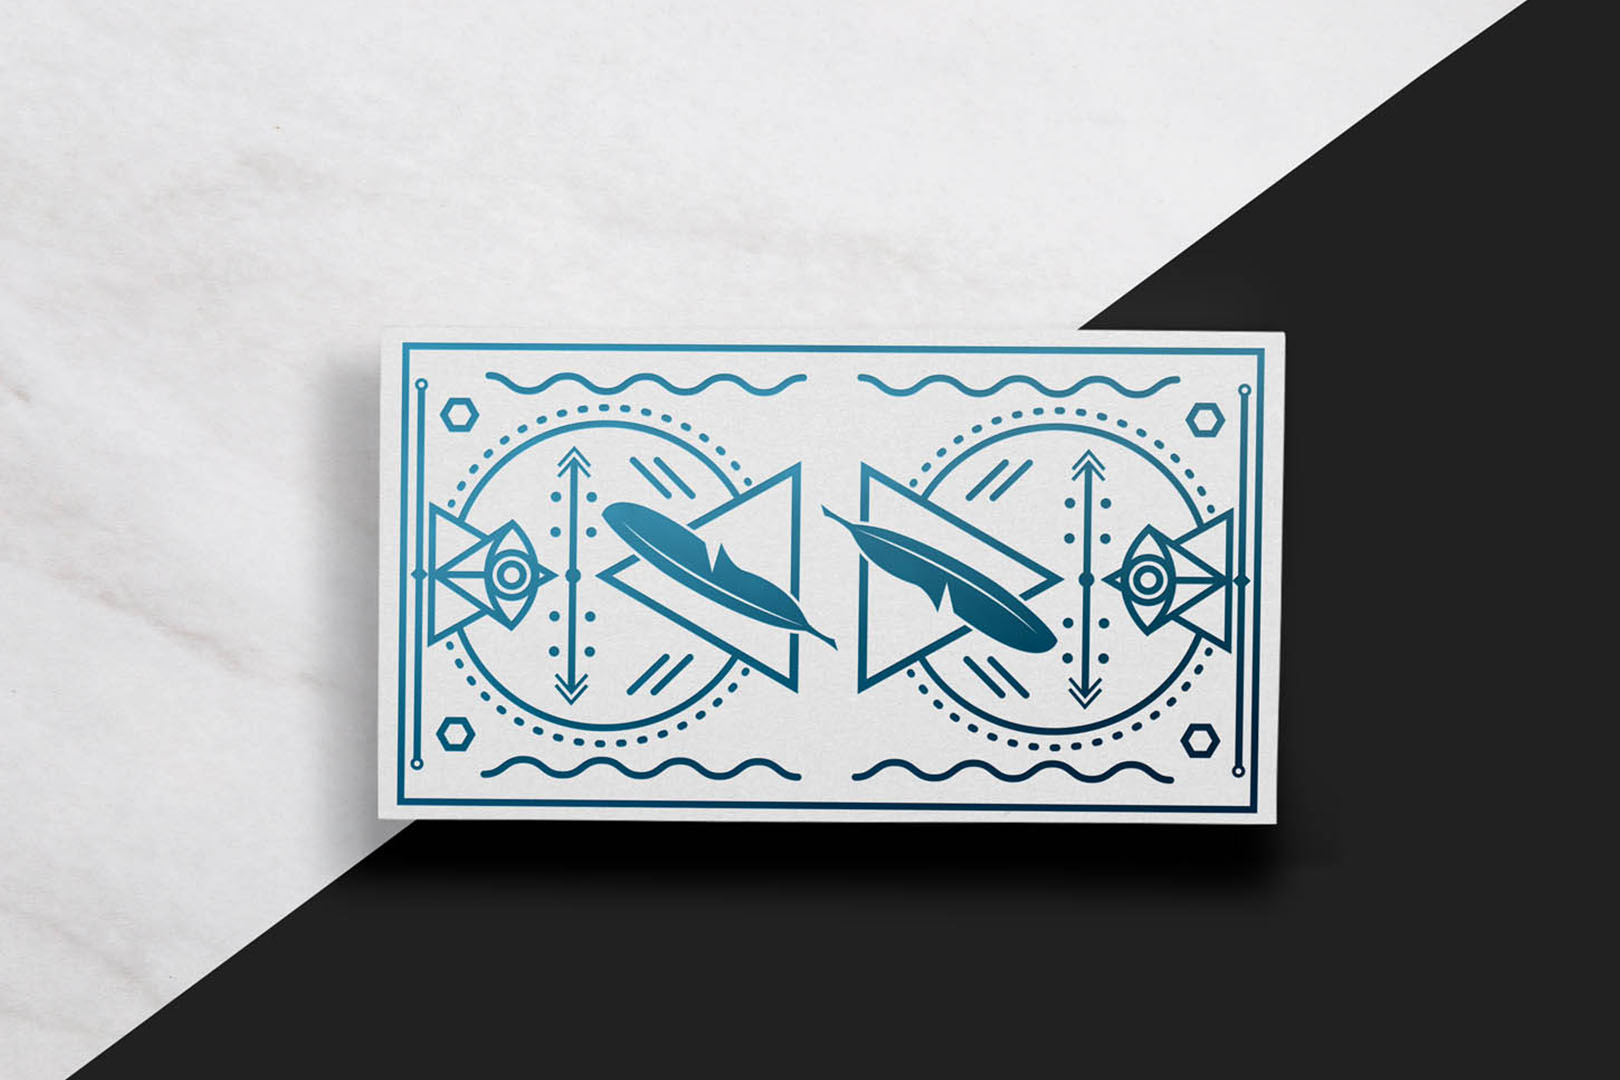 Magpie_Alchemy_Business_Card_mock__0004_Magpie_Alchemy_Business_Card_mock_v2